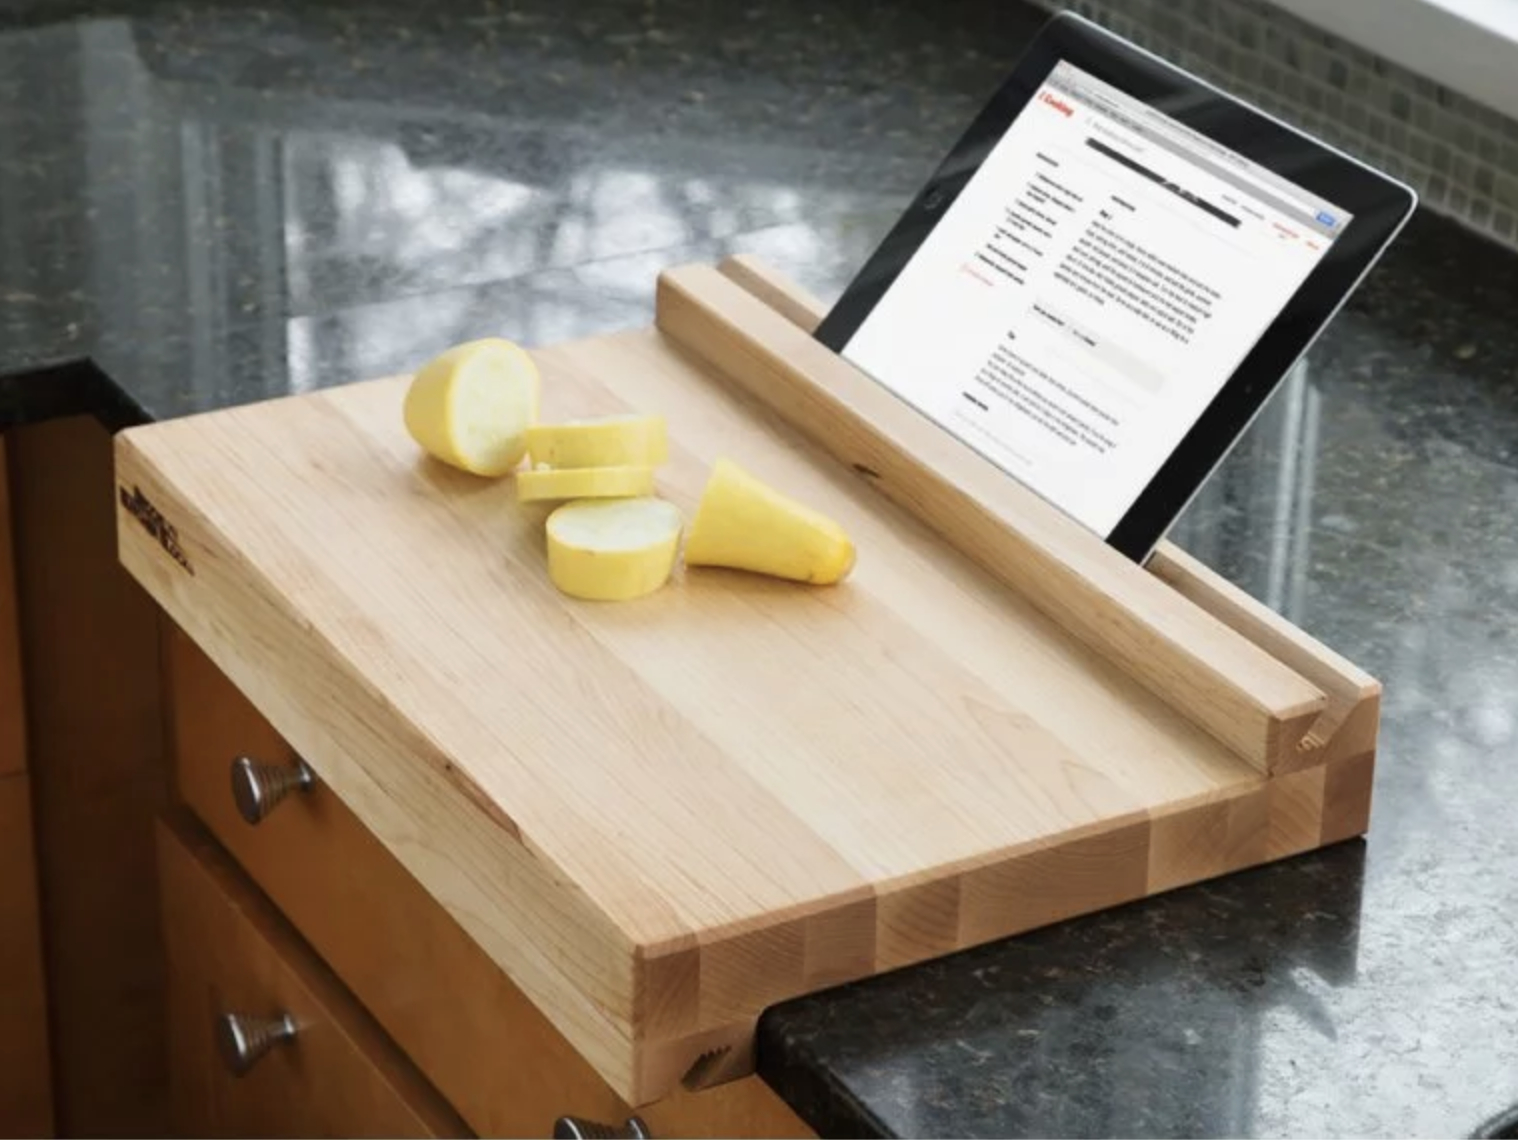 Grommet Tablet-Holding Cutting Board